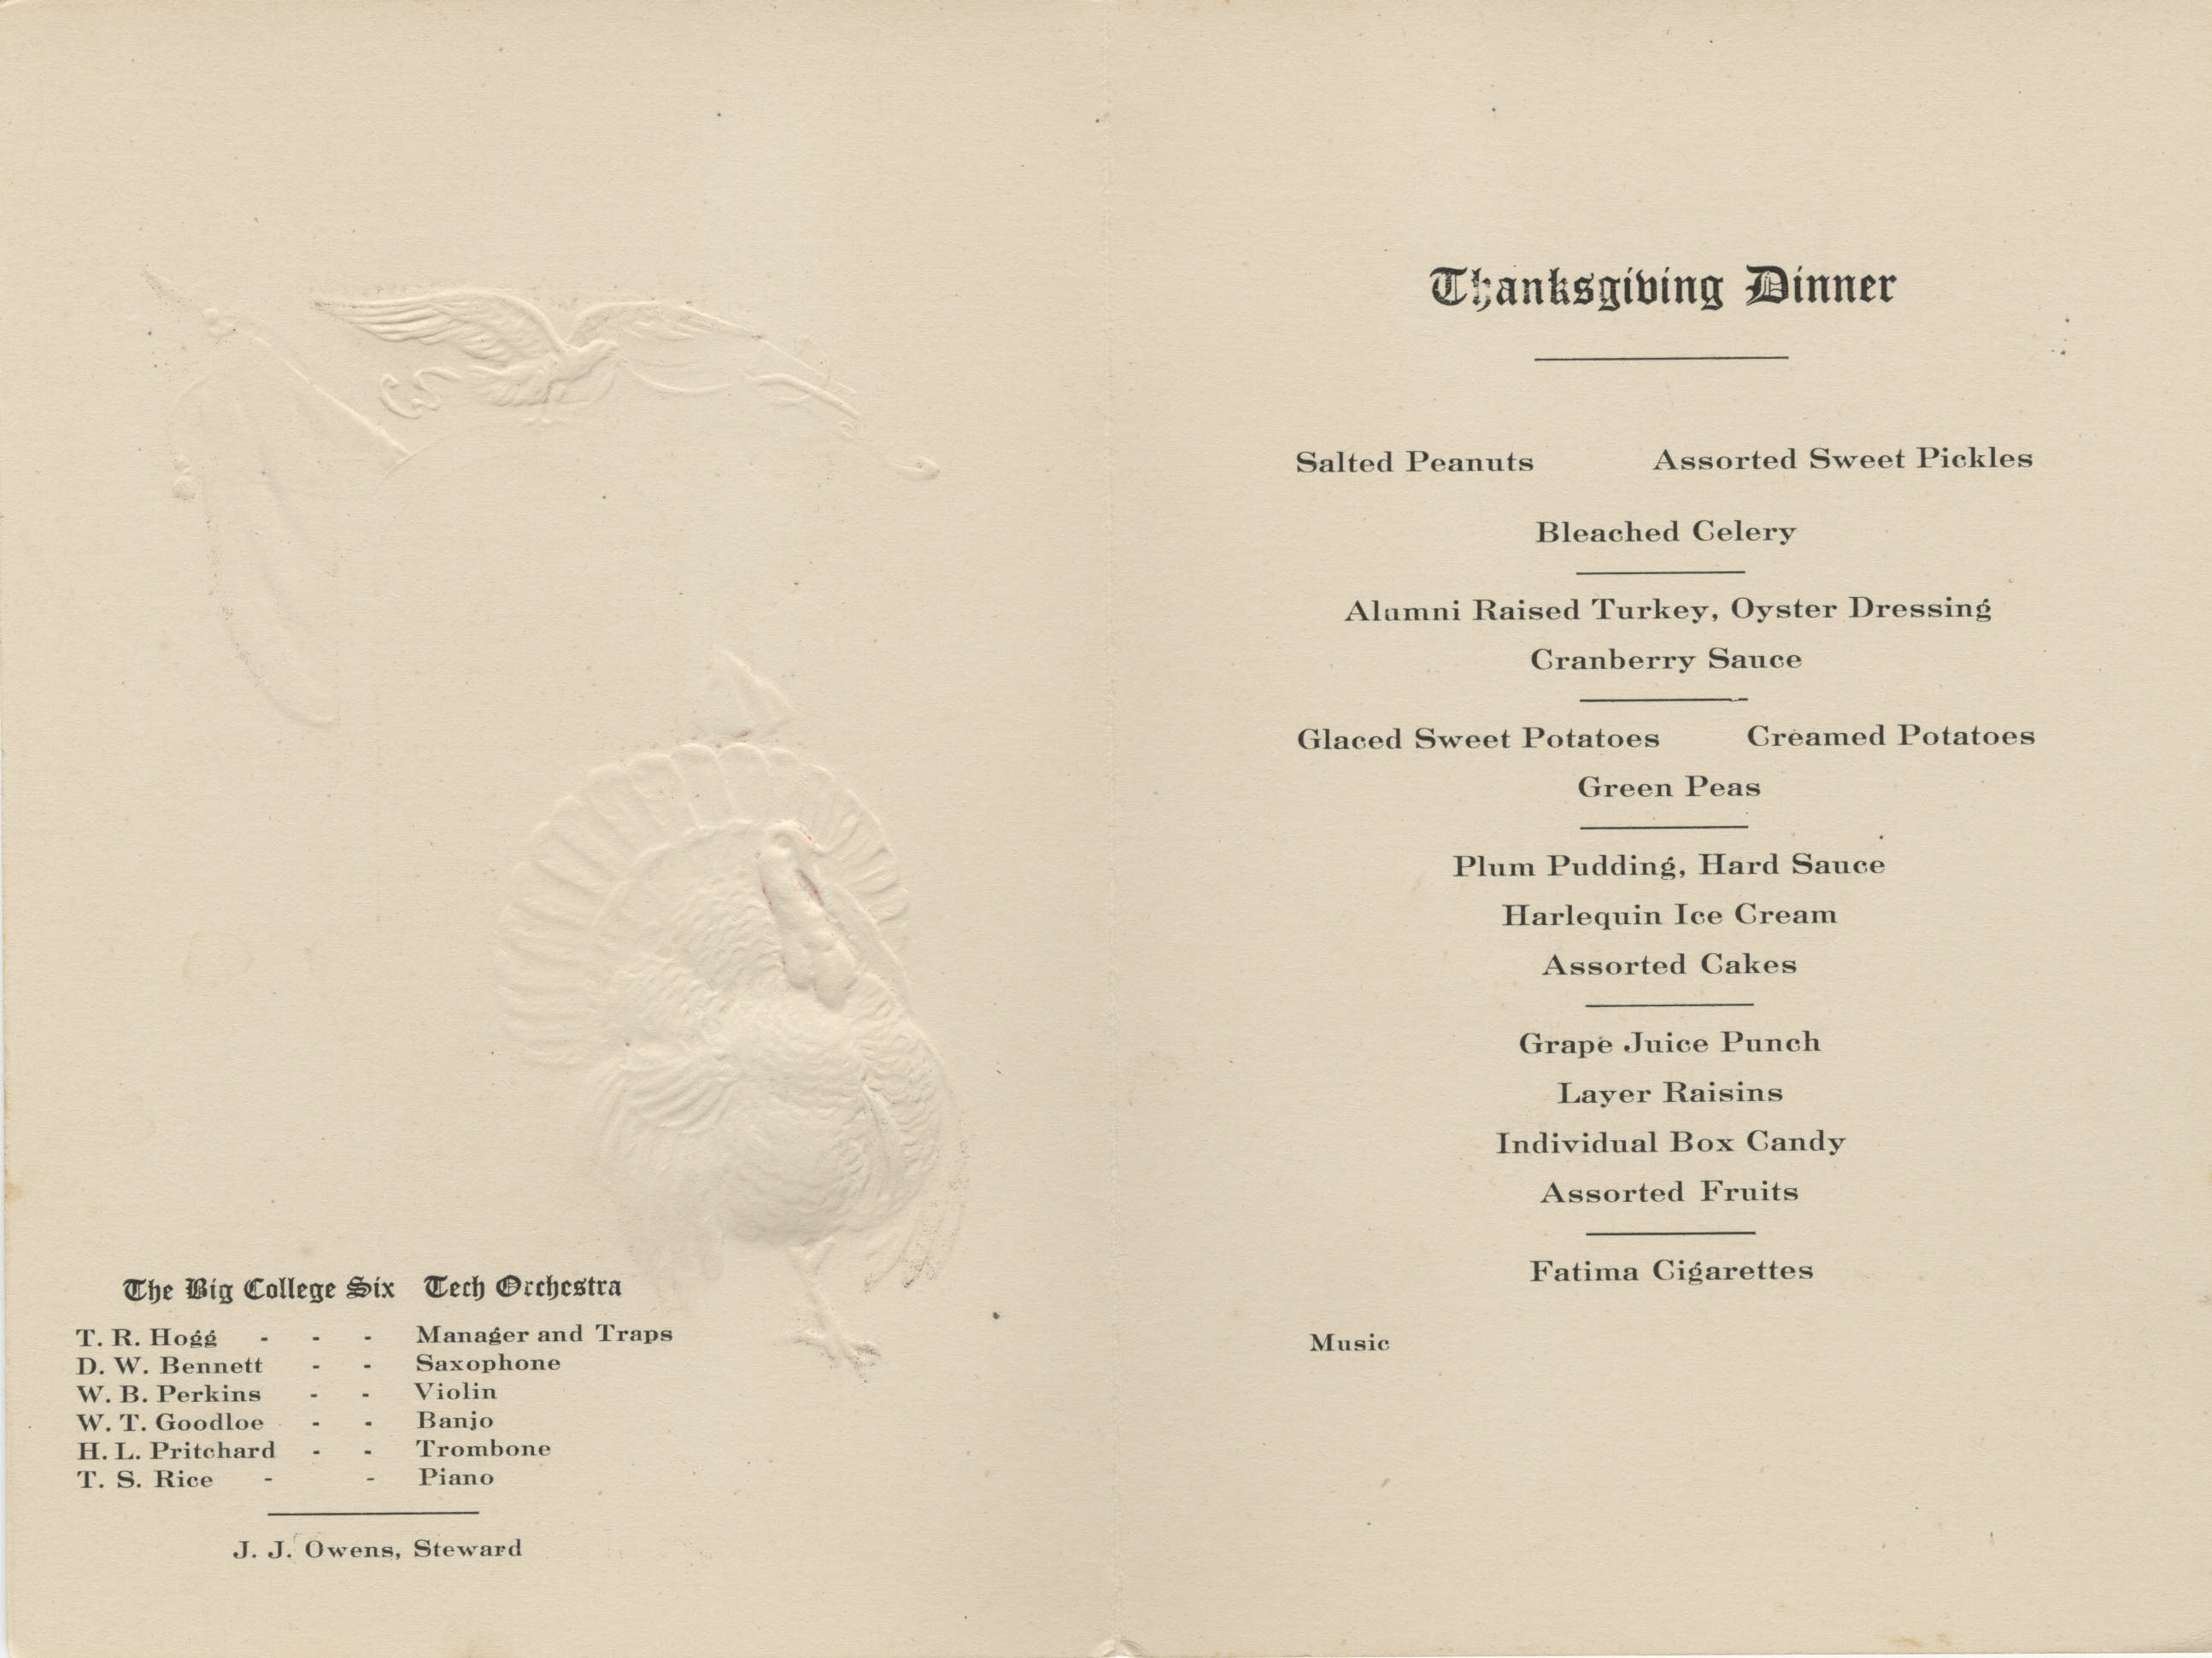 1921 Thanksgiving DInner Menu